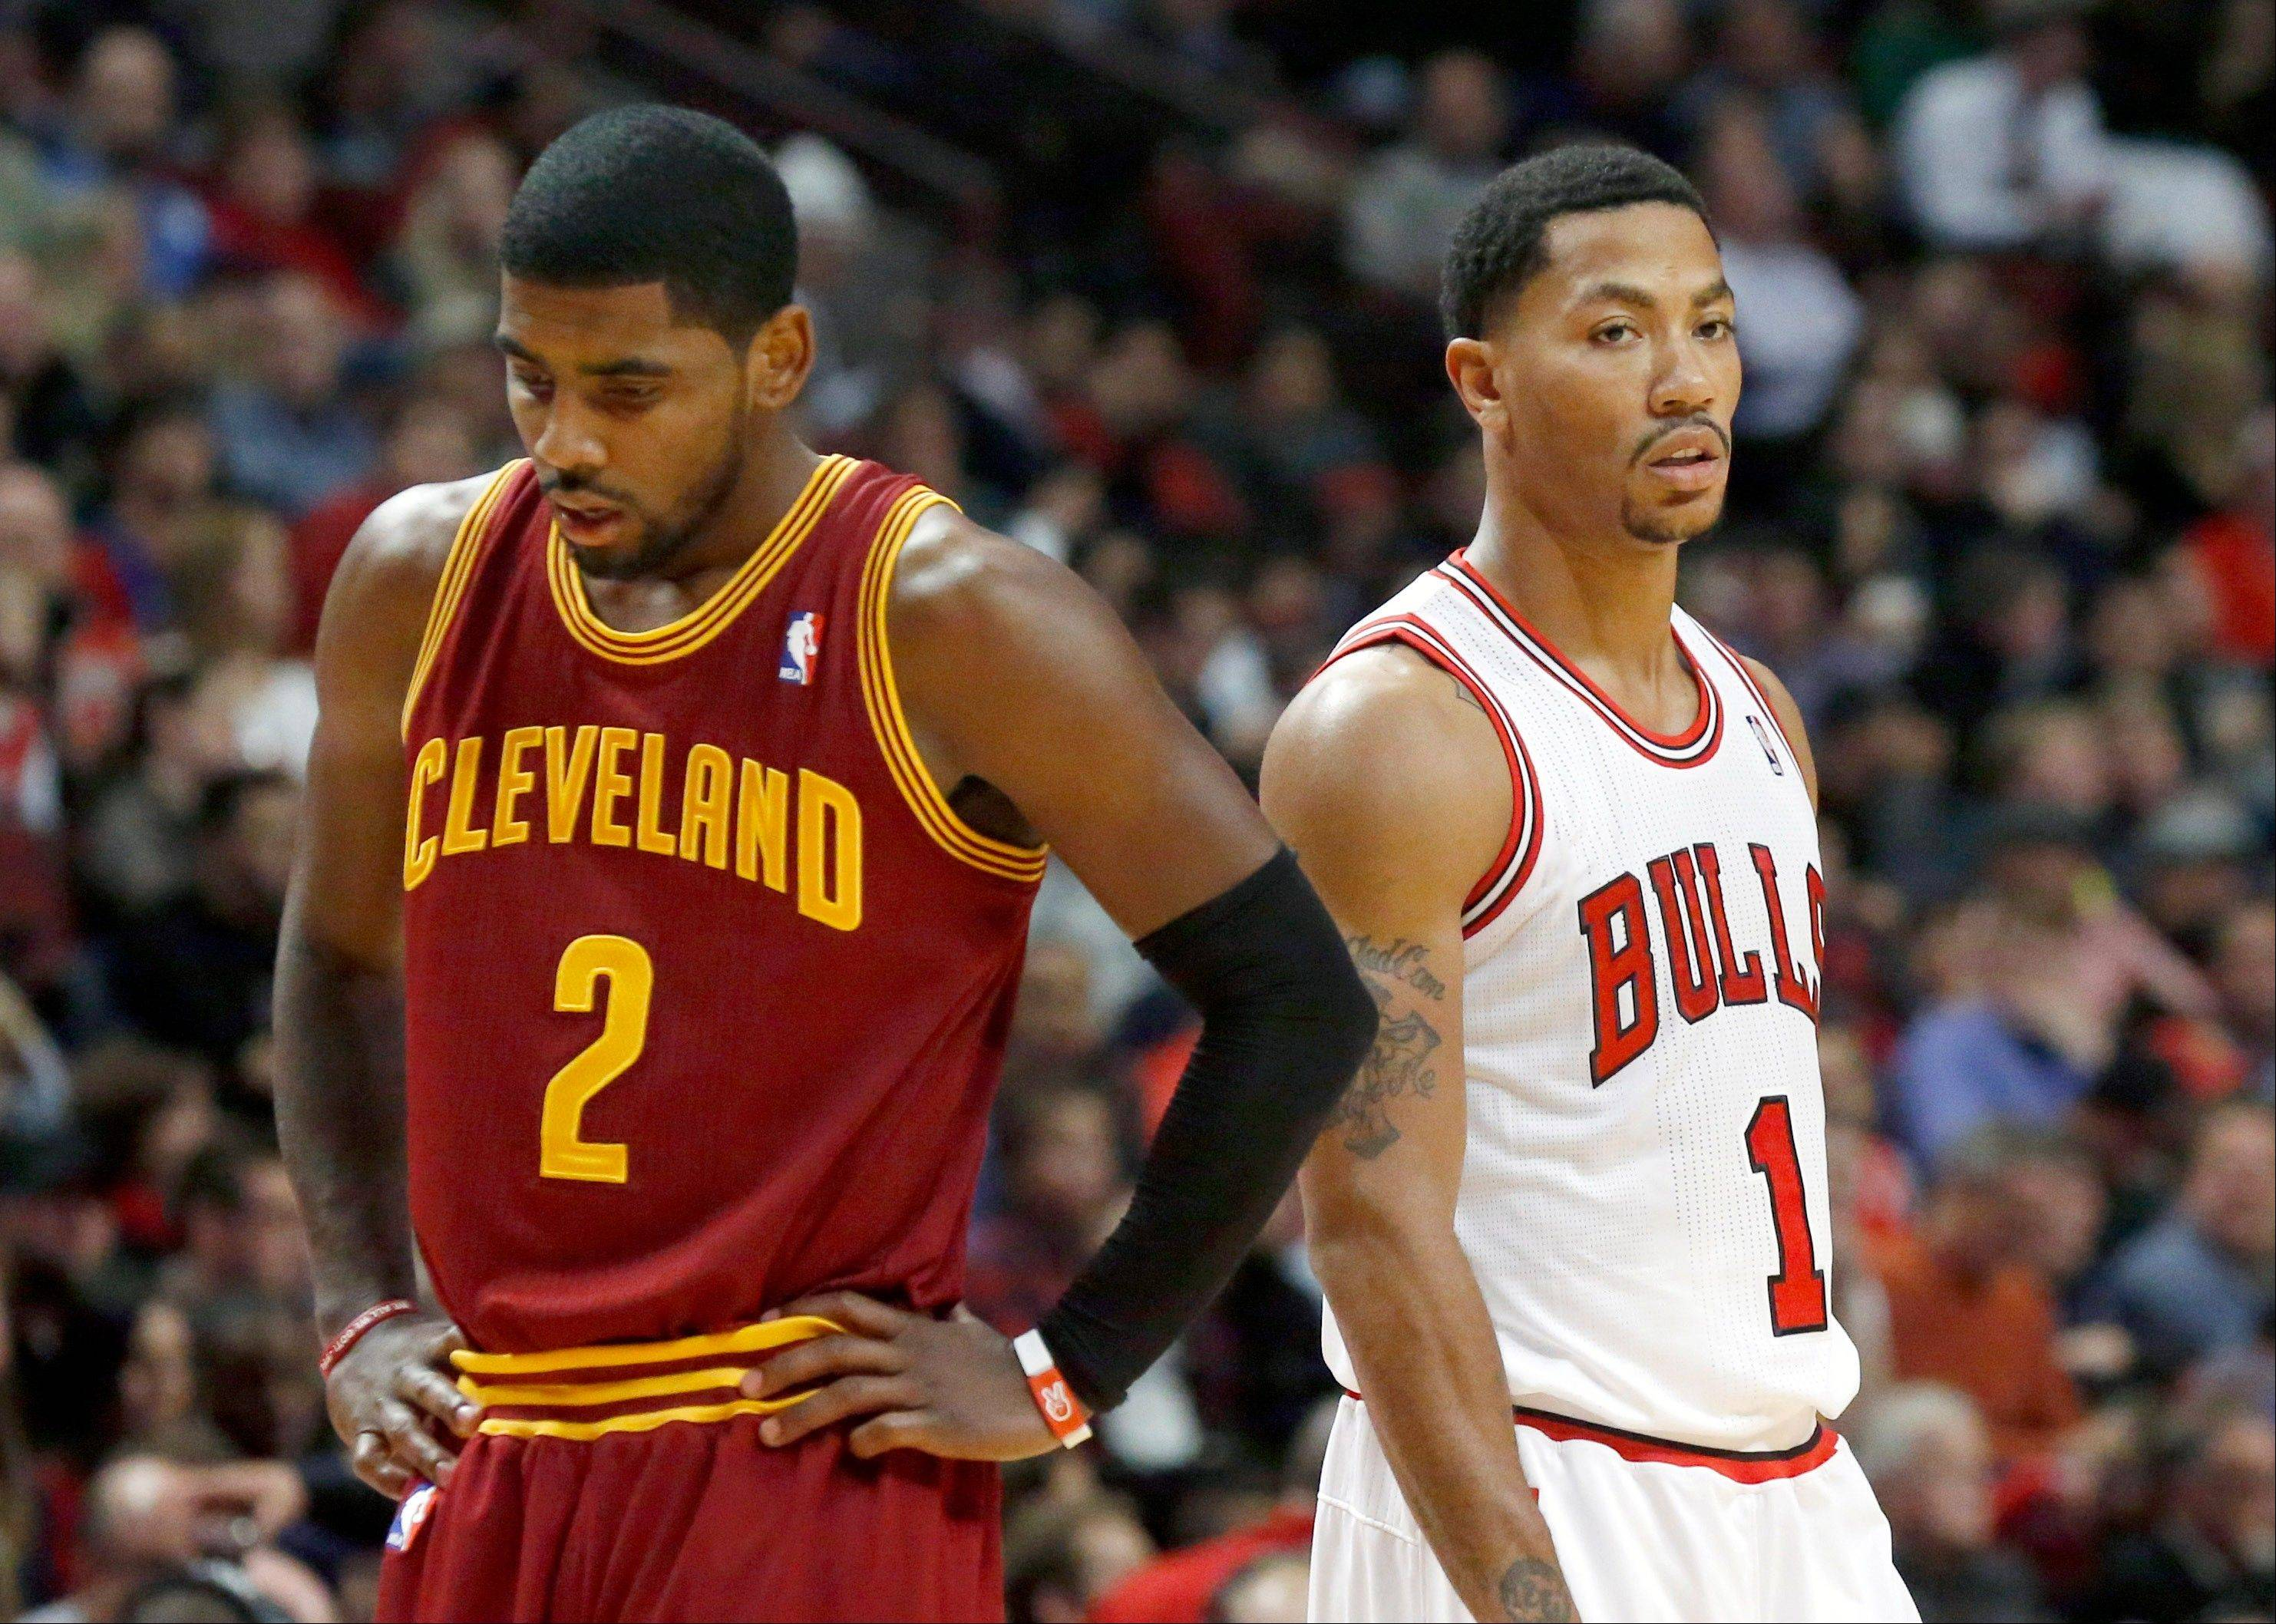 Chicago Bulls point guard Derrick Rose (1) and Cleveland Cavaliers point guard Kyrie Irving wait for a Bulls free throw attempt during the second half of an NBA basketball game against the Chicago Bulls Monday, Nov. 11, 2013, in Chicago. The Bulls won 96-81.